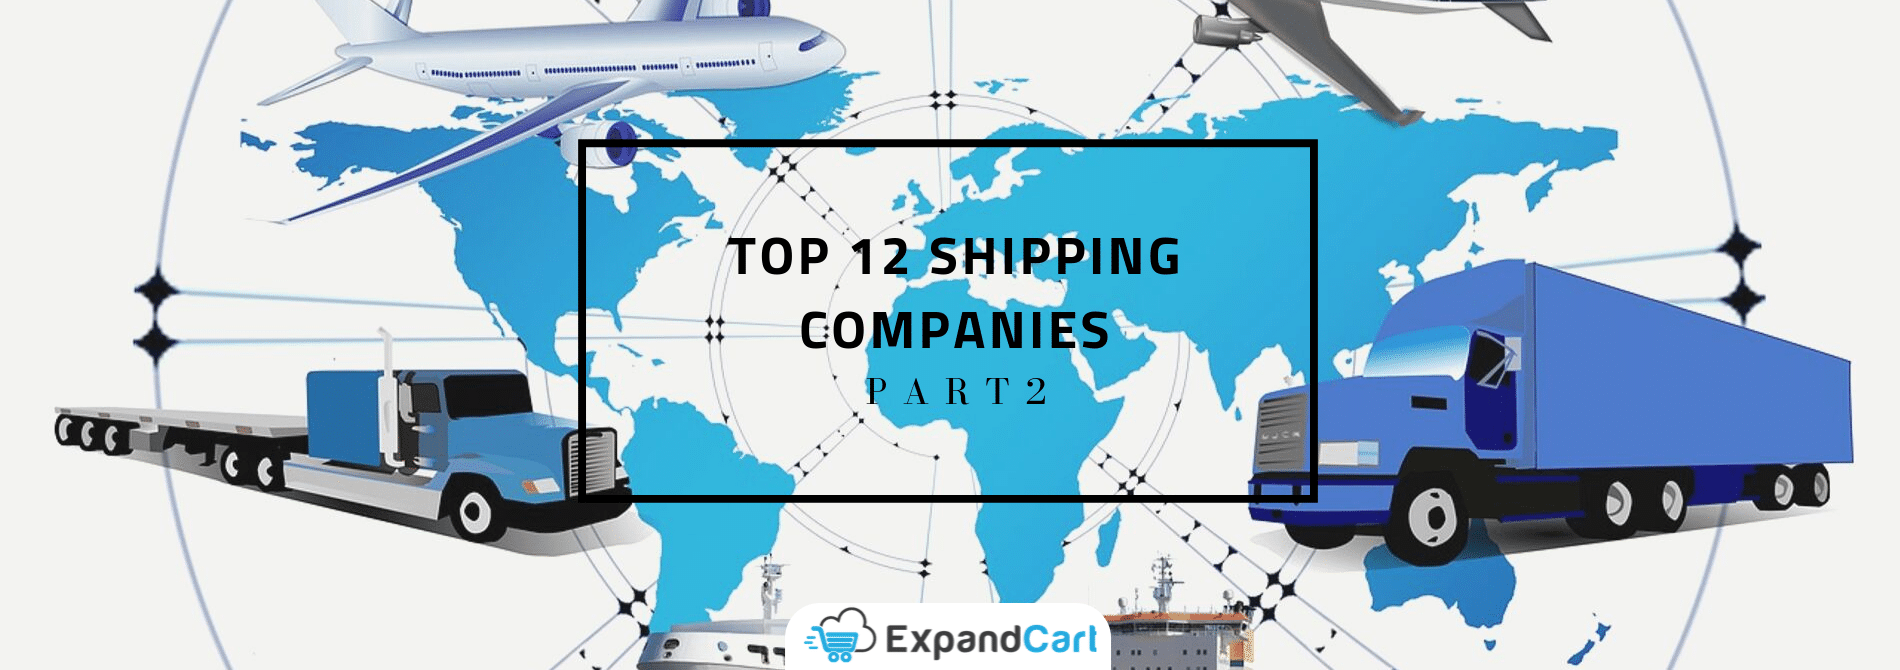 Top 12 Shipping Companies Worldwide — Full Guide Part 2